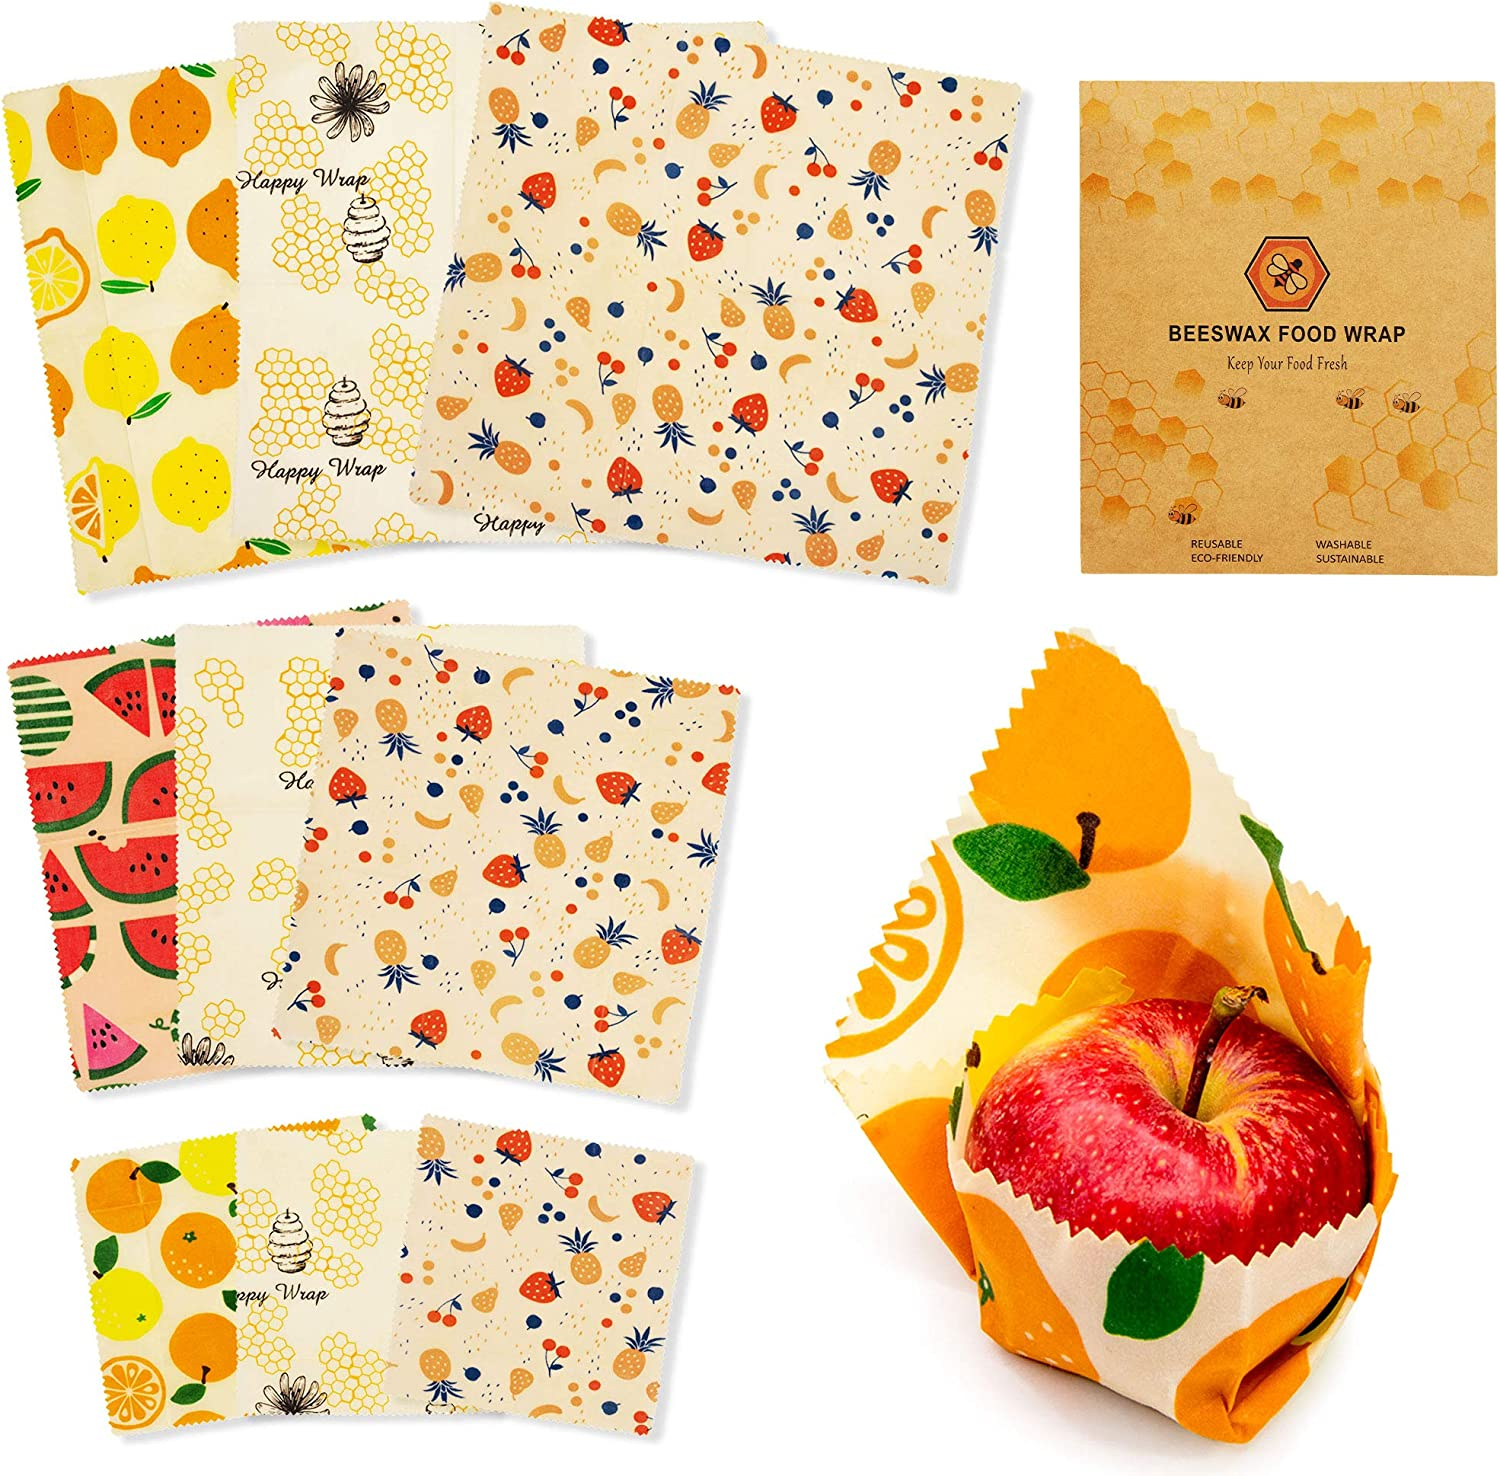 Beeswax Food Wraps Reusable Set - 9 Pcs Sustainable Food Paper Covers with Jojoba Oil and Tree Resin in 3 Sizes Small Medium and Large Plastic Free Alternative Food Storage Bread Sandwich Wrapping